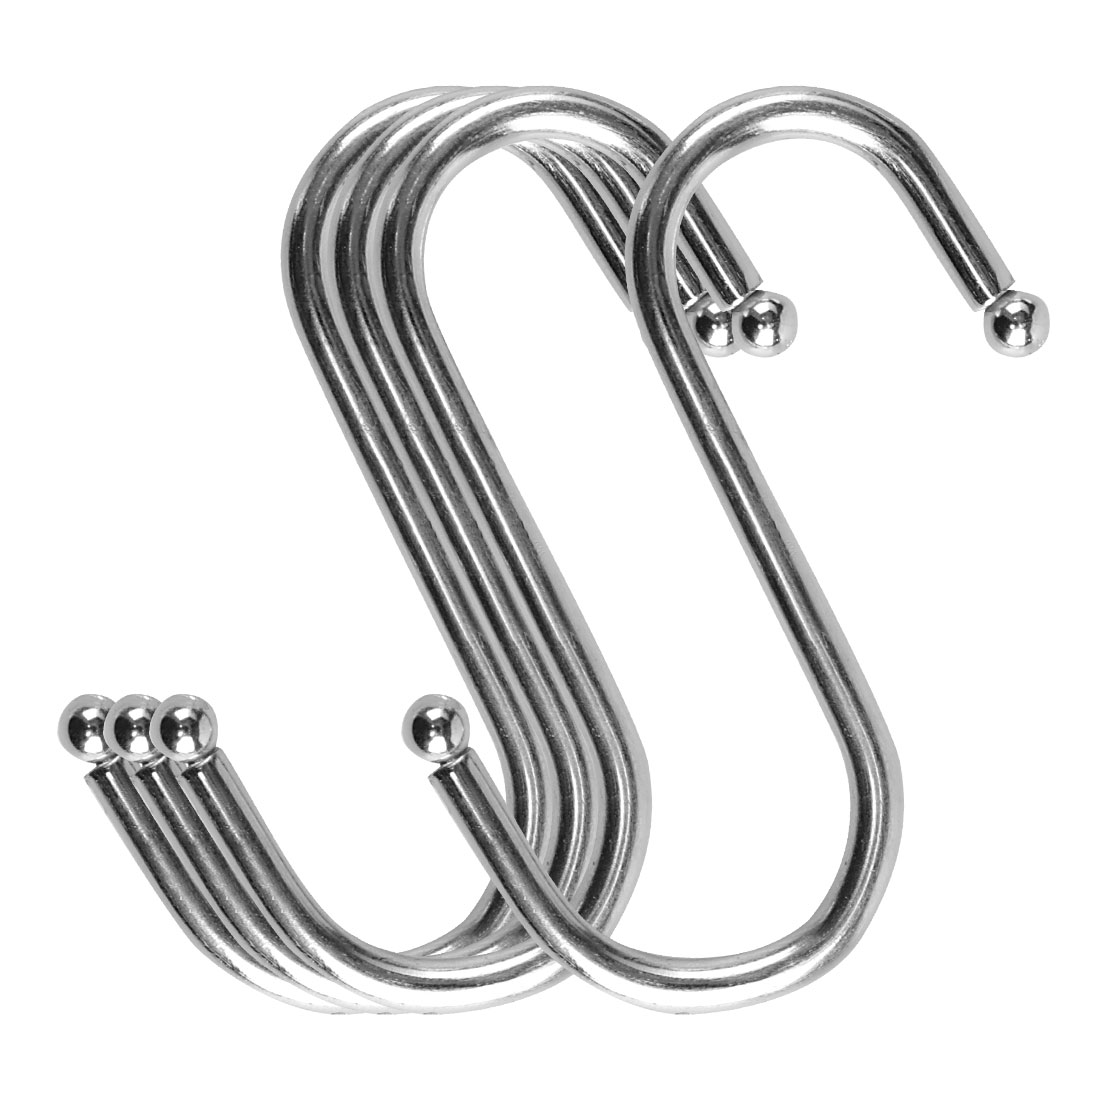 S Shape Hook Rack Stainless Steel for Kitchenware Clothes Towel Holder 4 Pack